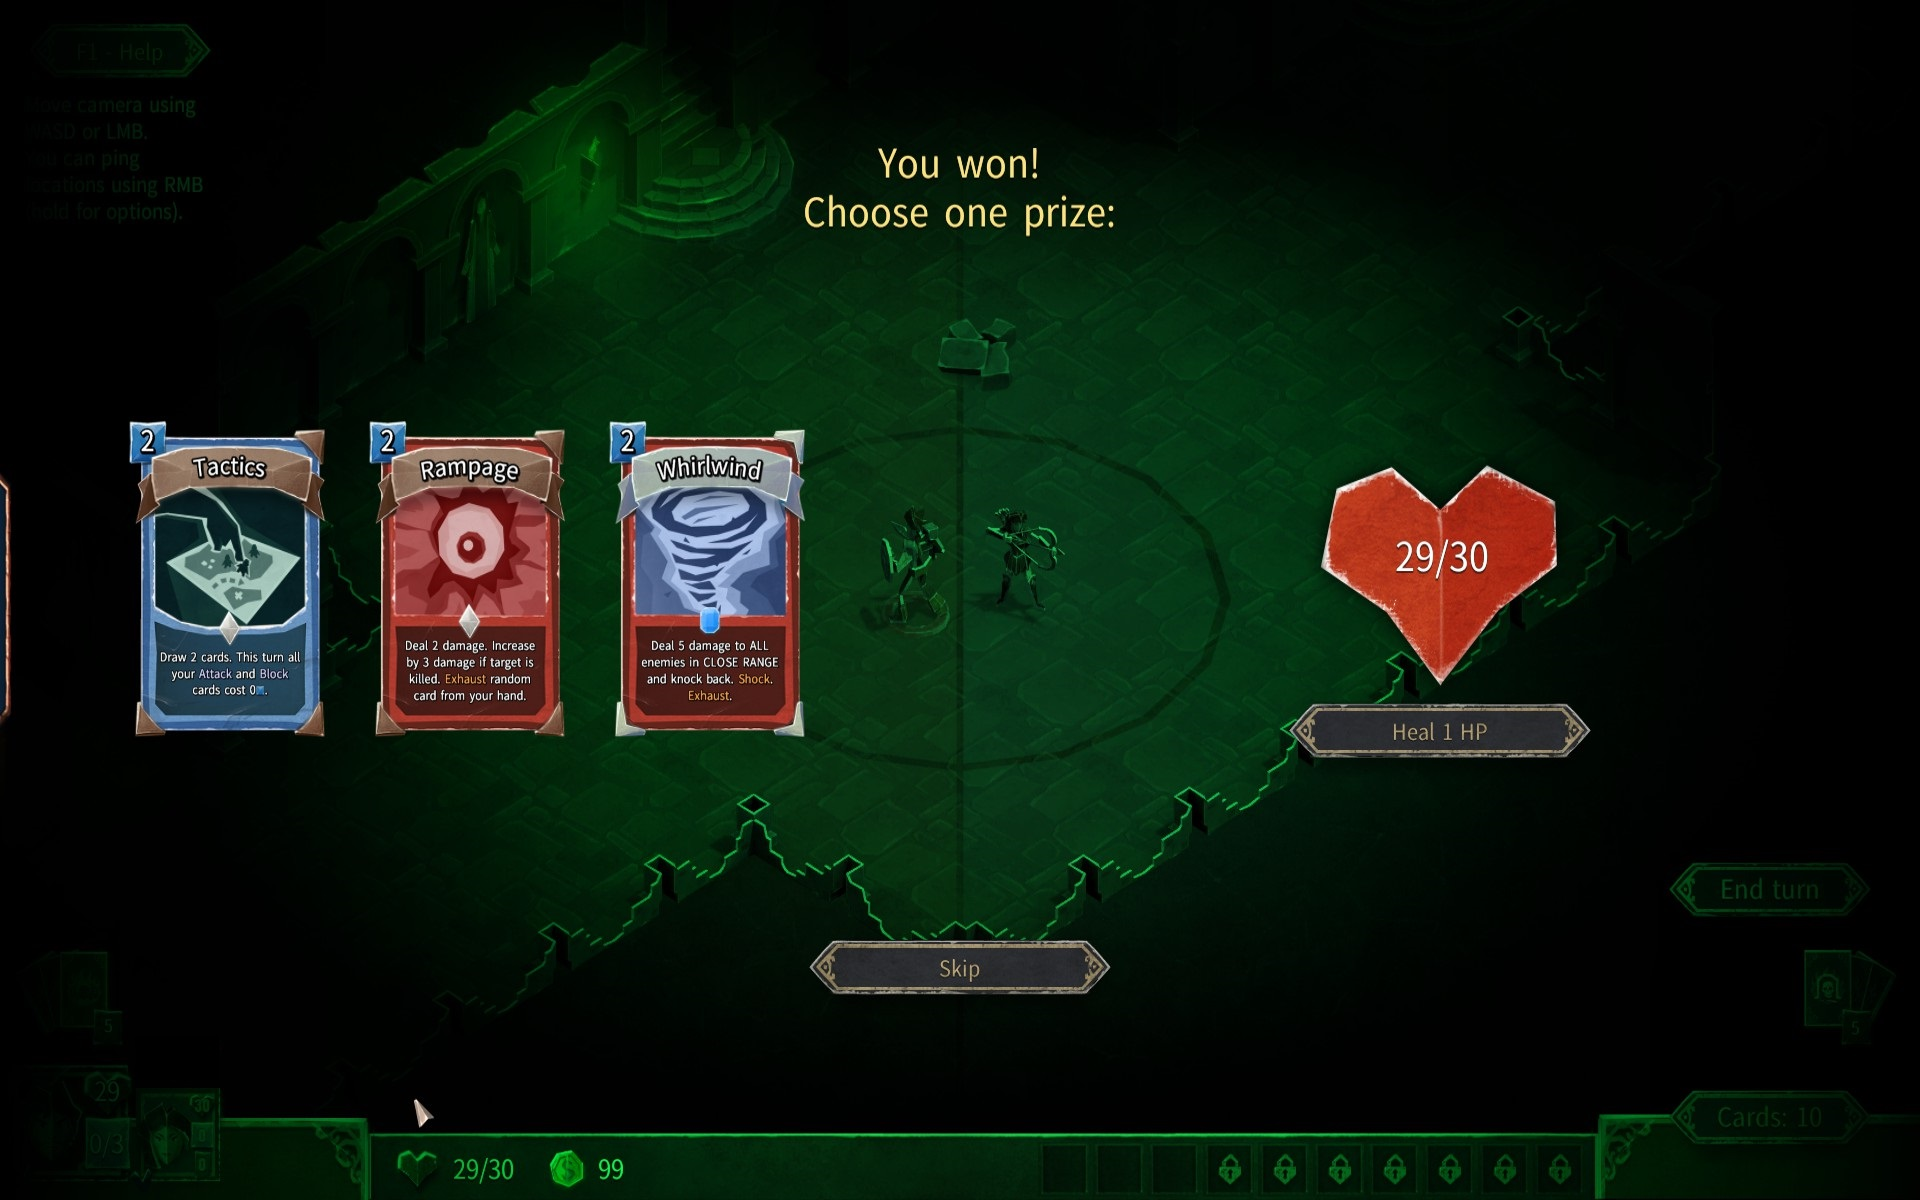 HELLCARD. Warrior level complete prizes, including new card options: Tactics, Rampage, and Whirlwind